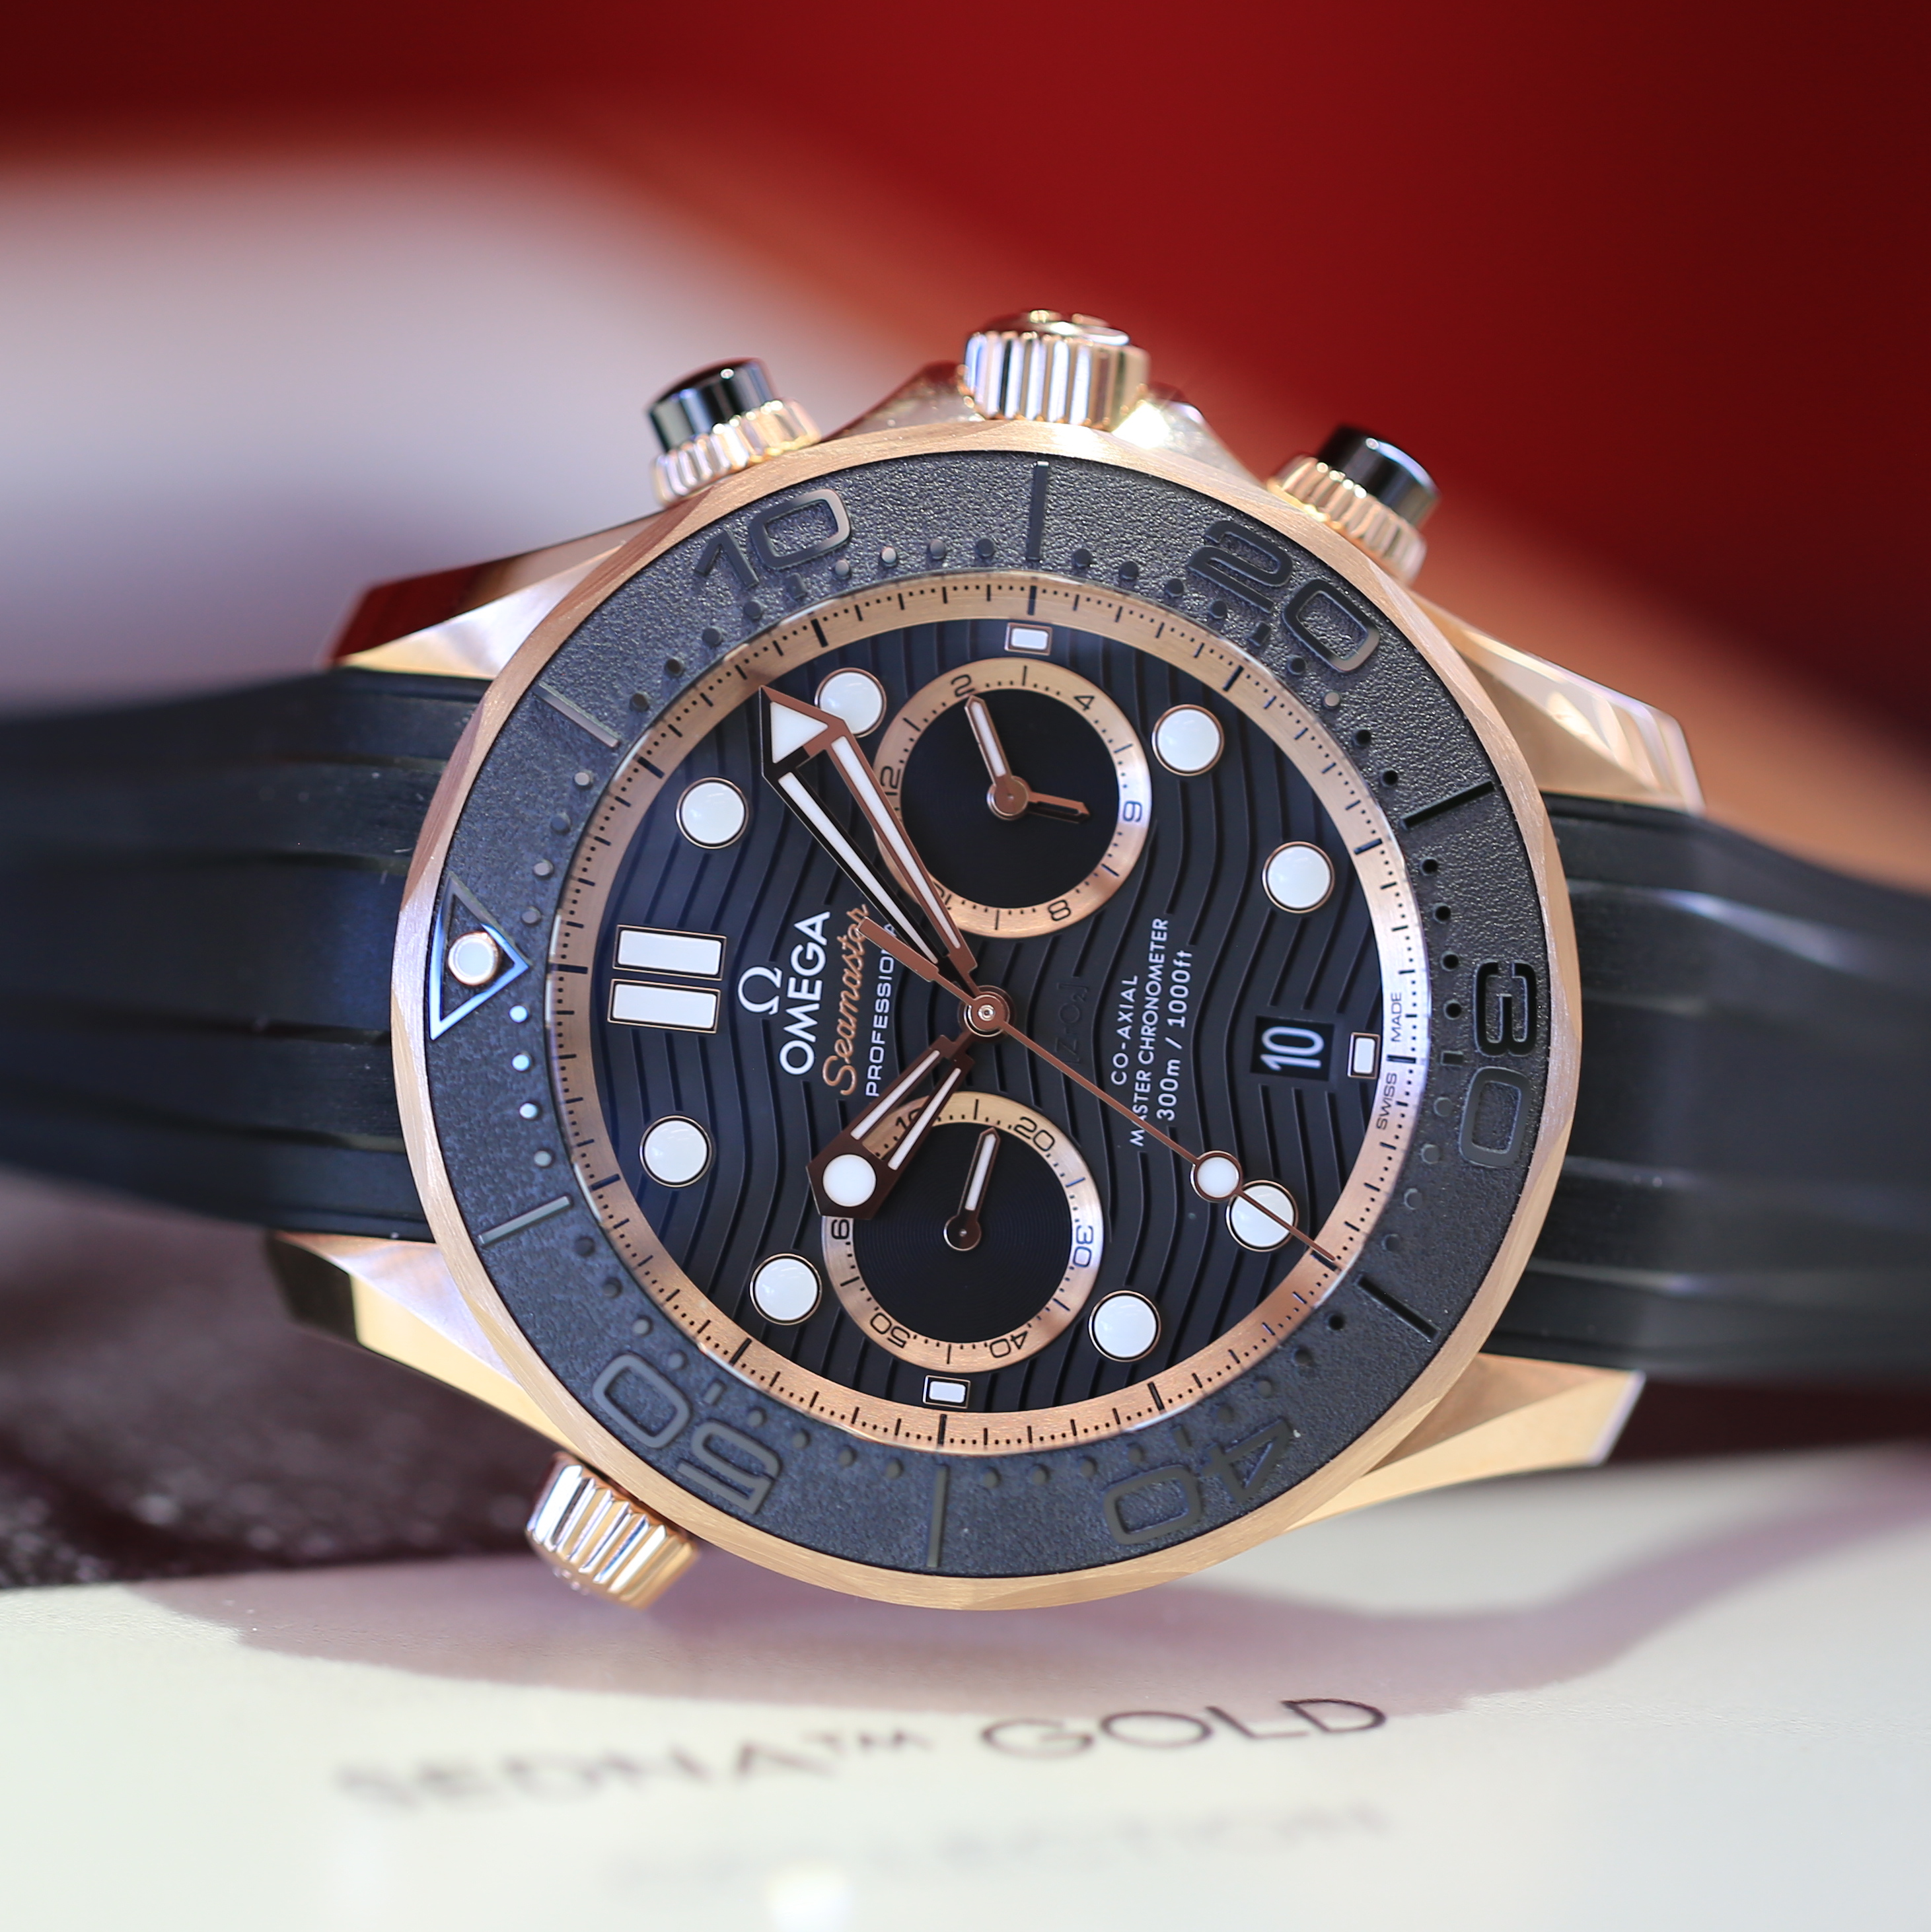 Swatch Group 2019 Release: The New Omega Seamaster Diver 300M Chronograph